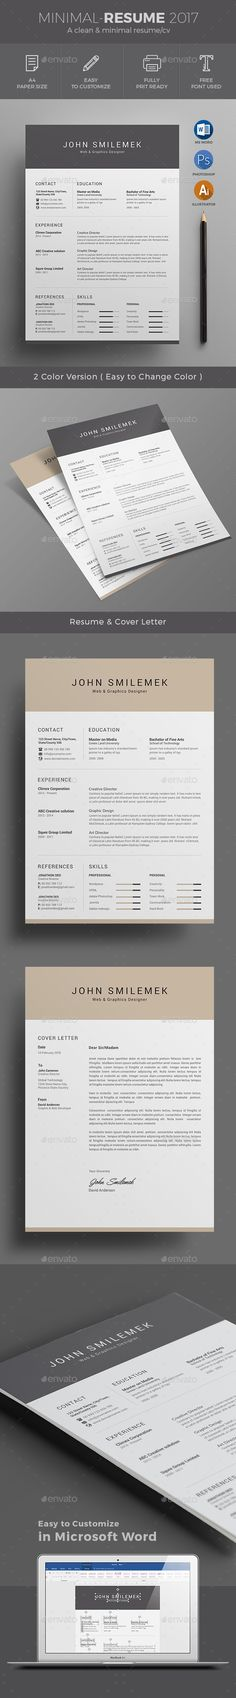 Resume Word Resume template download, Modern resume template and - professional resume templates free download